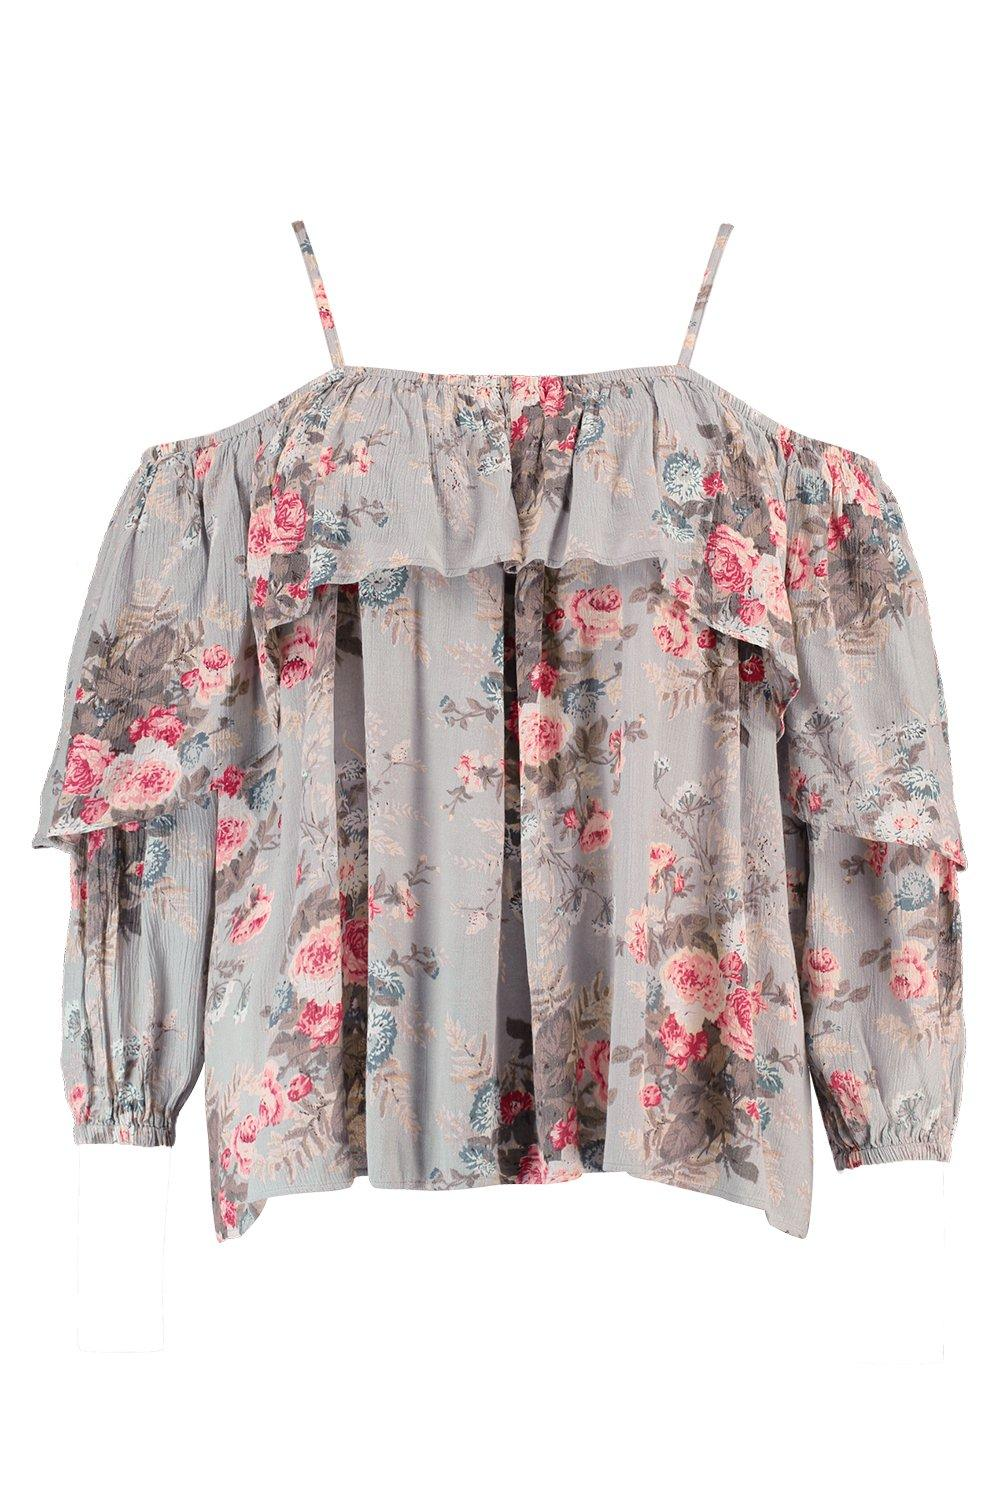 Floral Top Open Shoulder multi Plus nY8aqwda